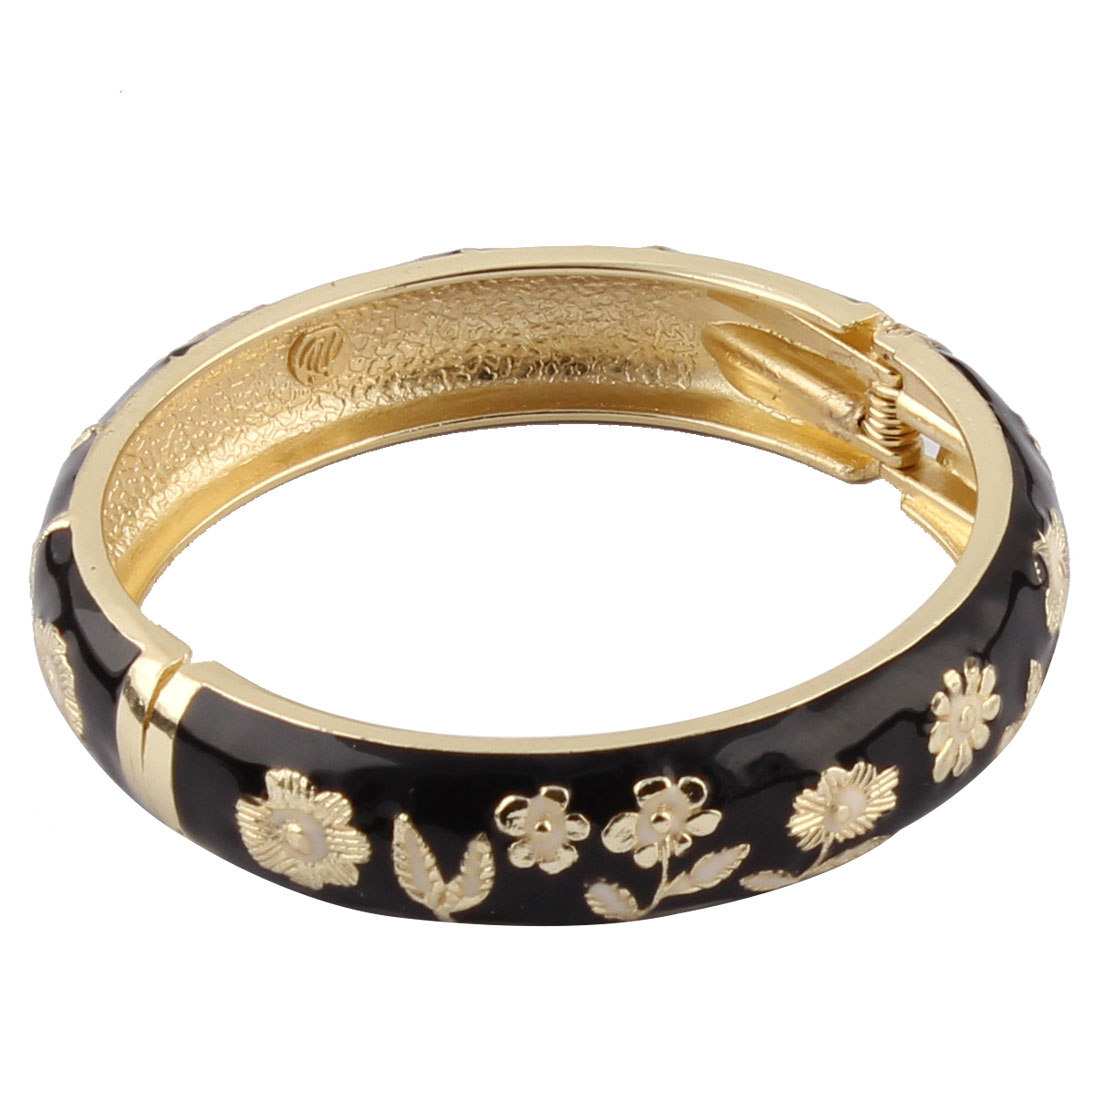 Woman Hinged Round Cuff Floral Pattern Enamel Bracelet Bangle Black Gold Tone